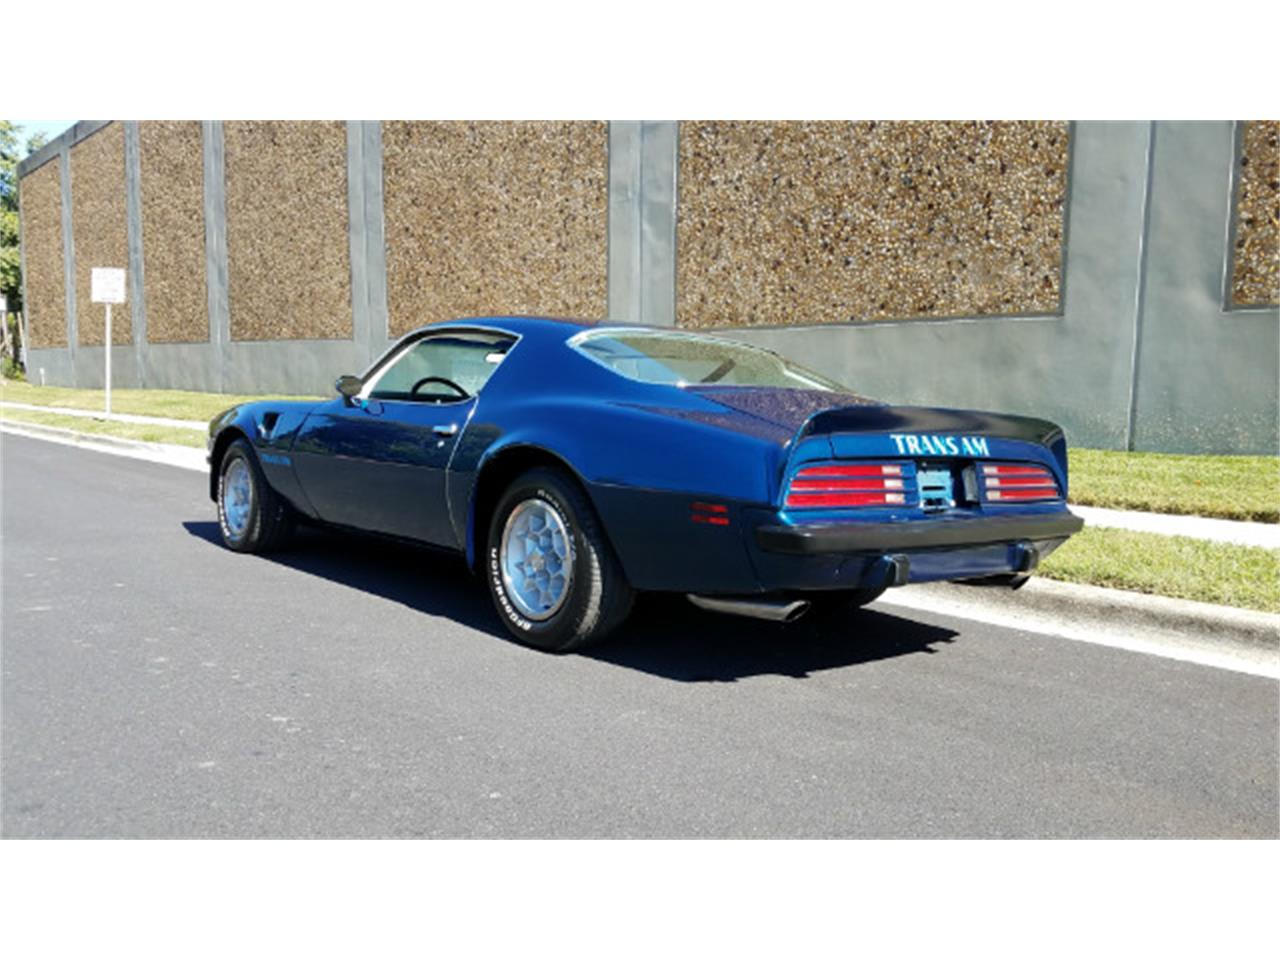 Large Picture of '74 Pontiac Firebird Trans Am - $78,900.00 Offered by Universal Auto Sales - MO89